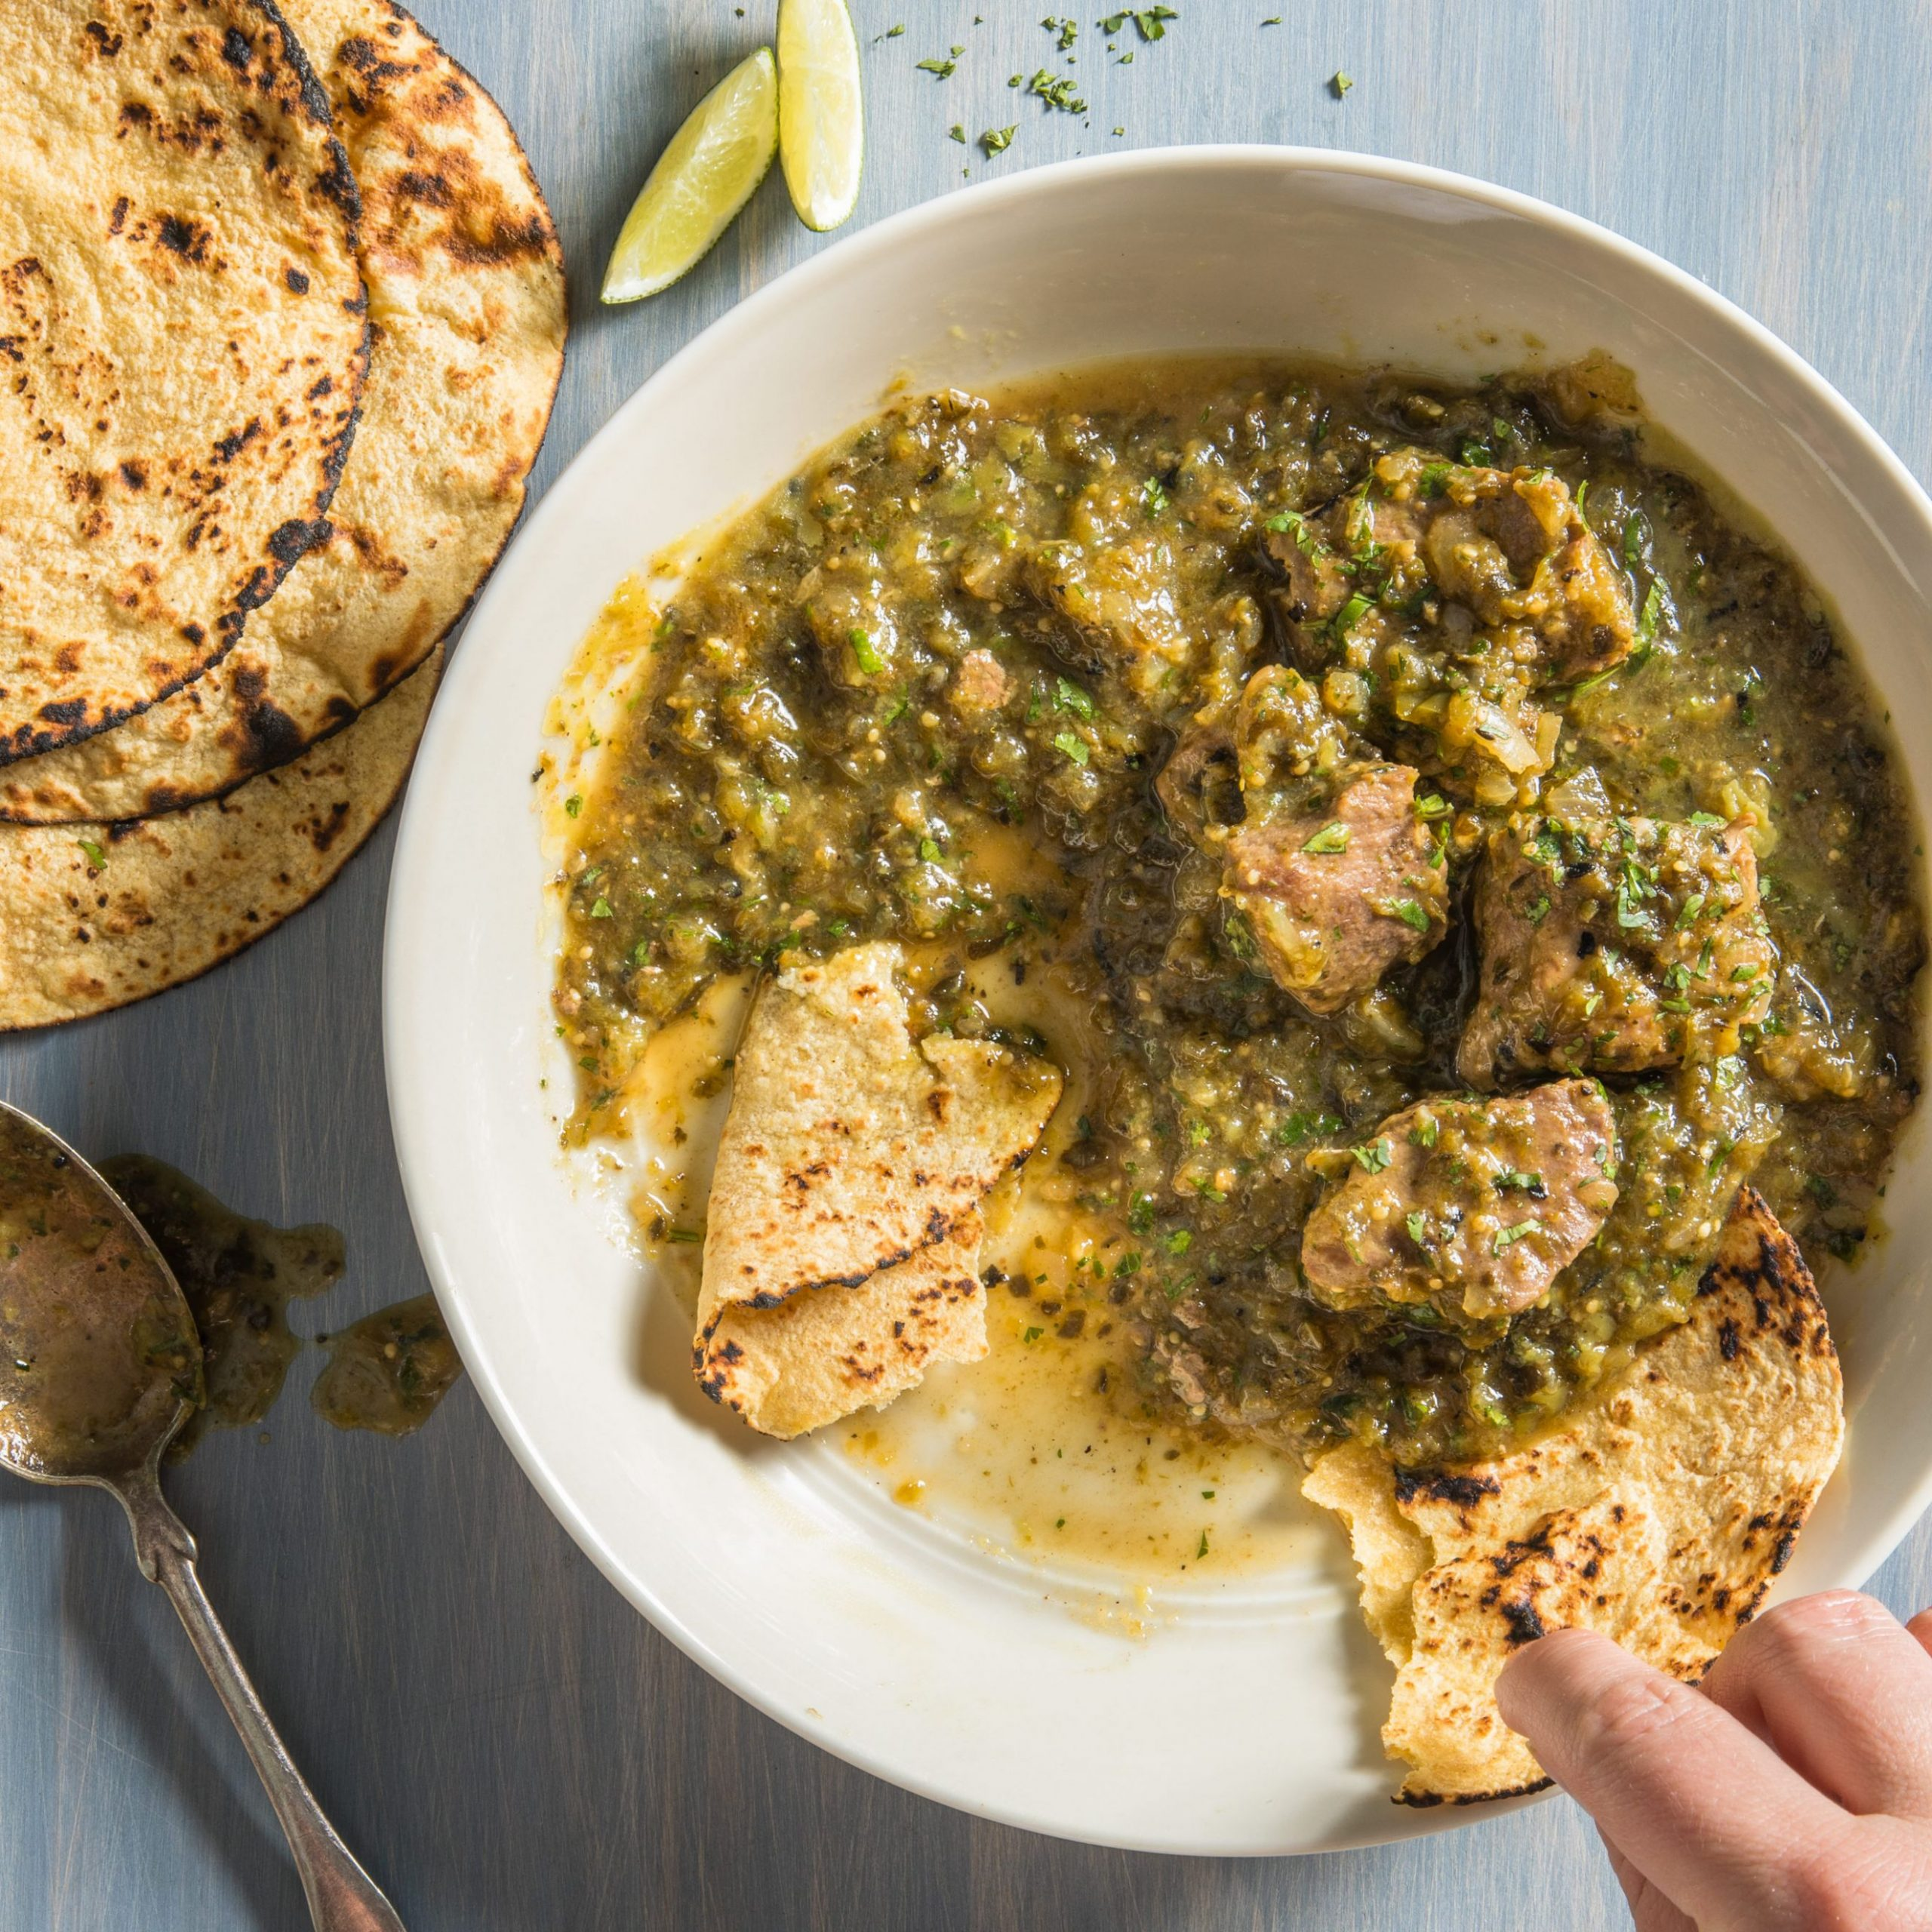 Green Chili with Pork (Chile Verde Con Cerdo)